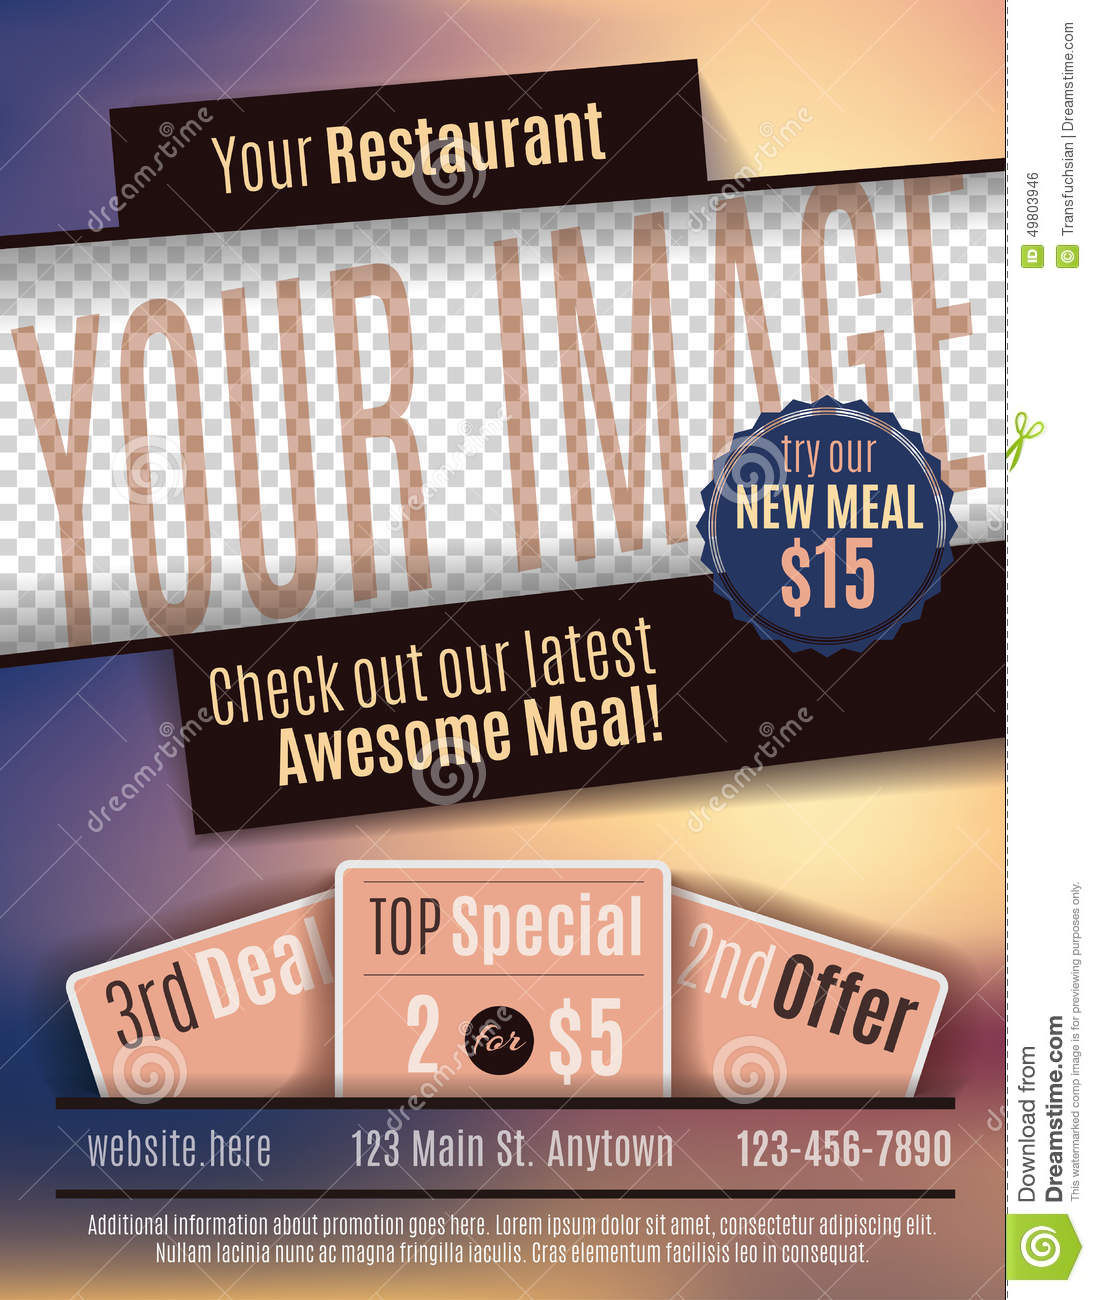 Restaurant Flyer Advertisement Template Stock Vector - Image: 49803946